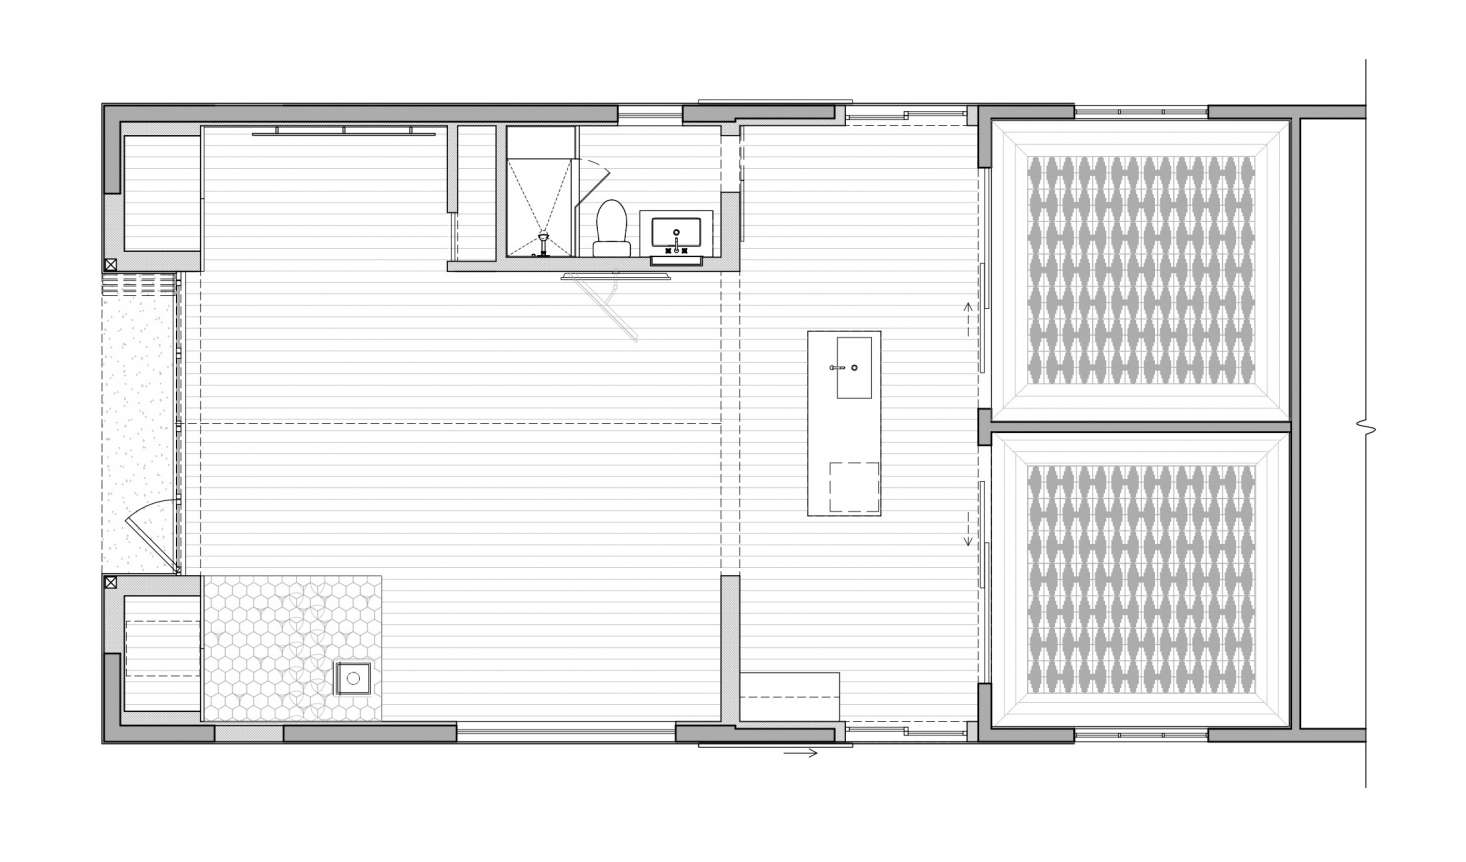 The guesthouse has two bedrooms, a kitchenette, bathroom, and lounge space totaling around 1,125 square feet.